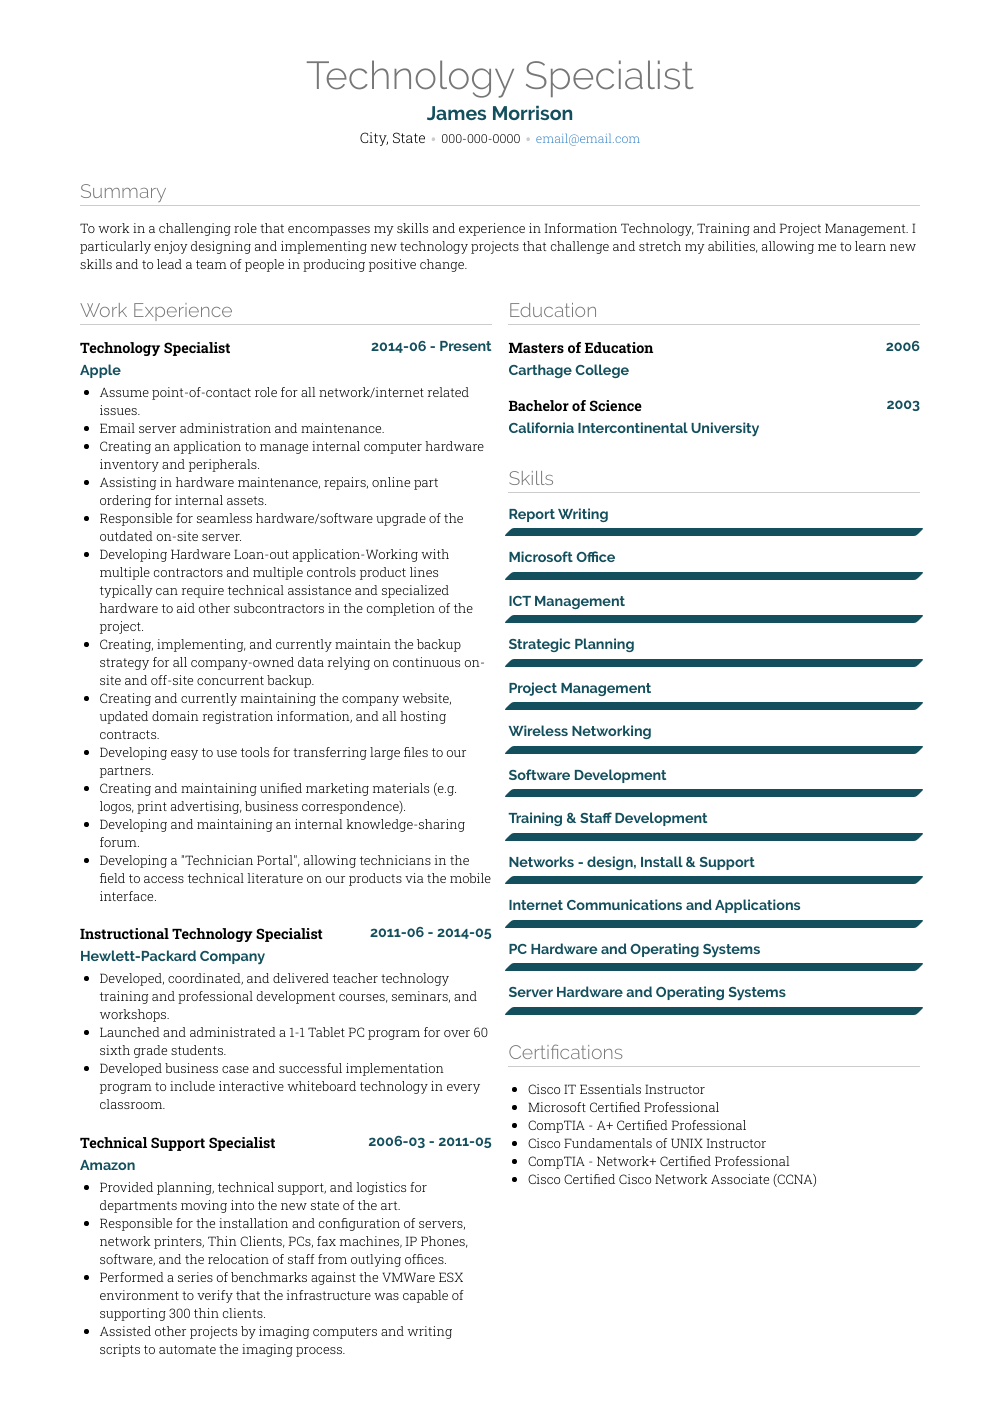 Information Technology Specialist Resume Sample